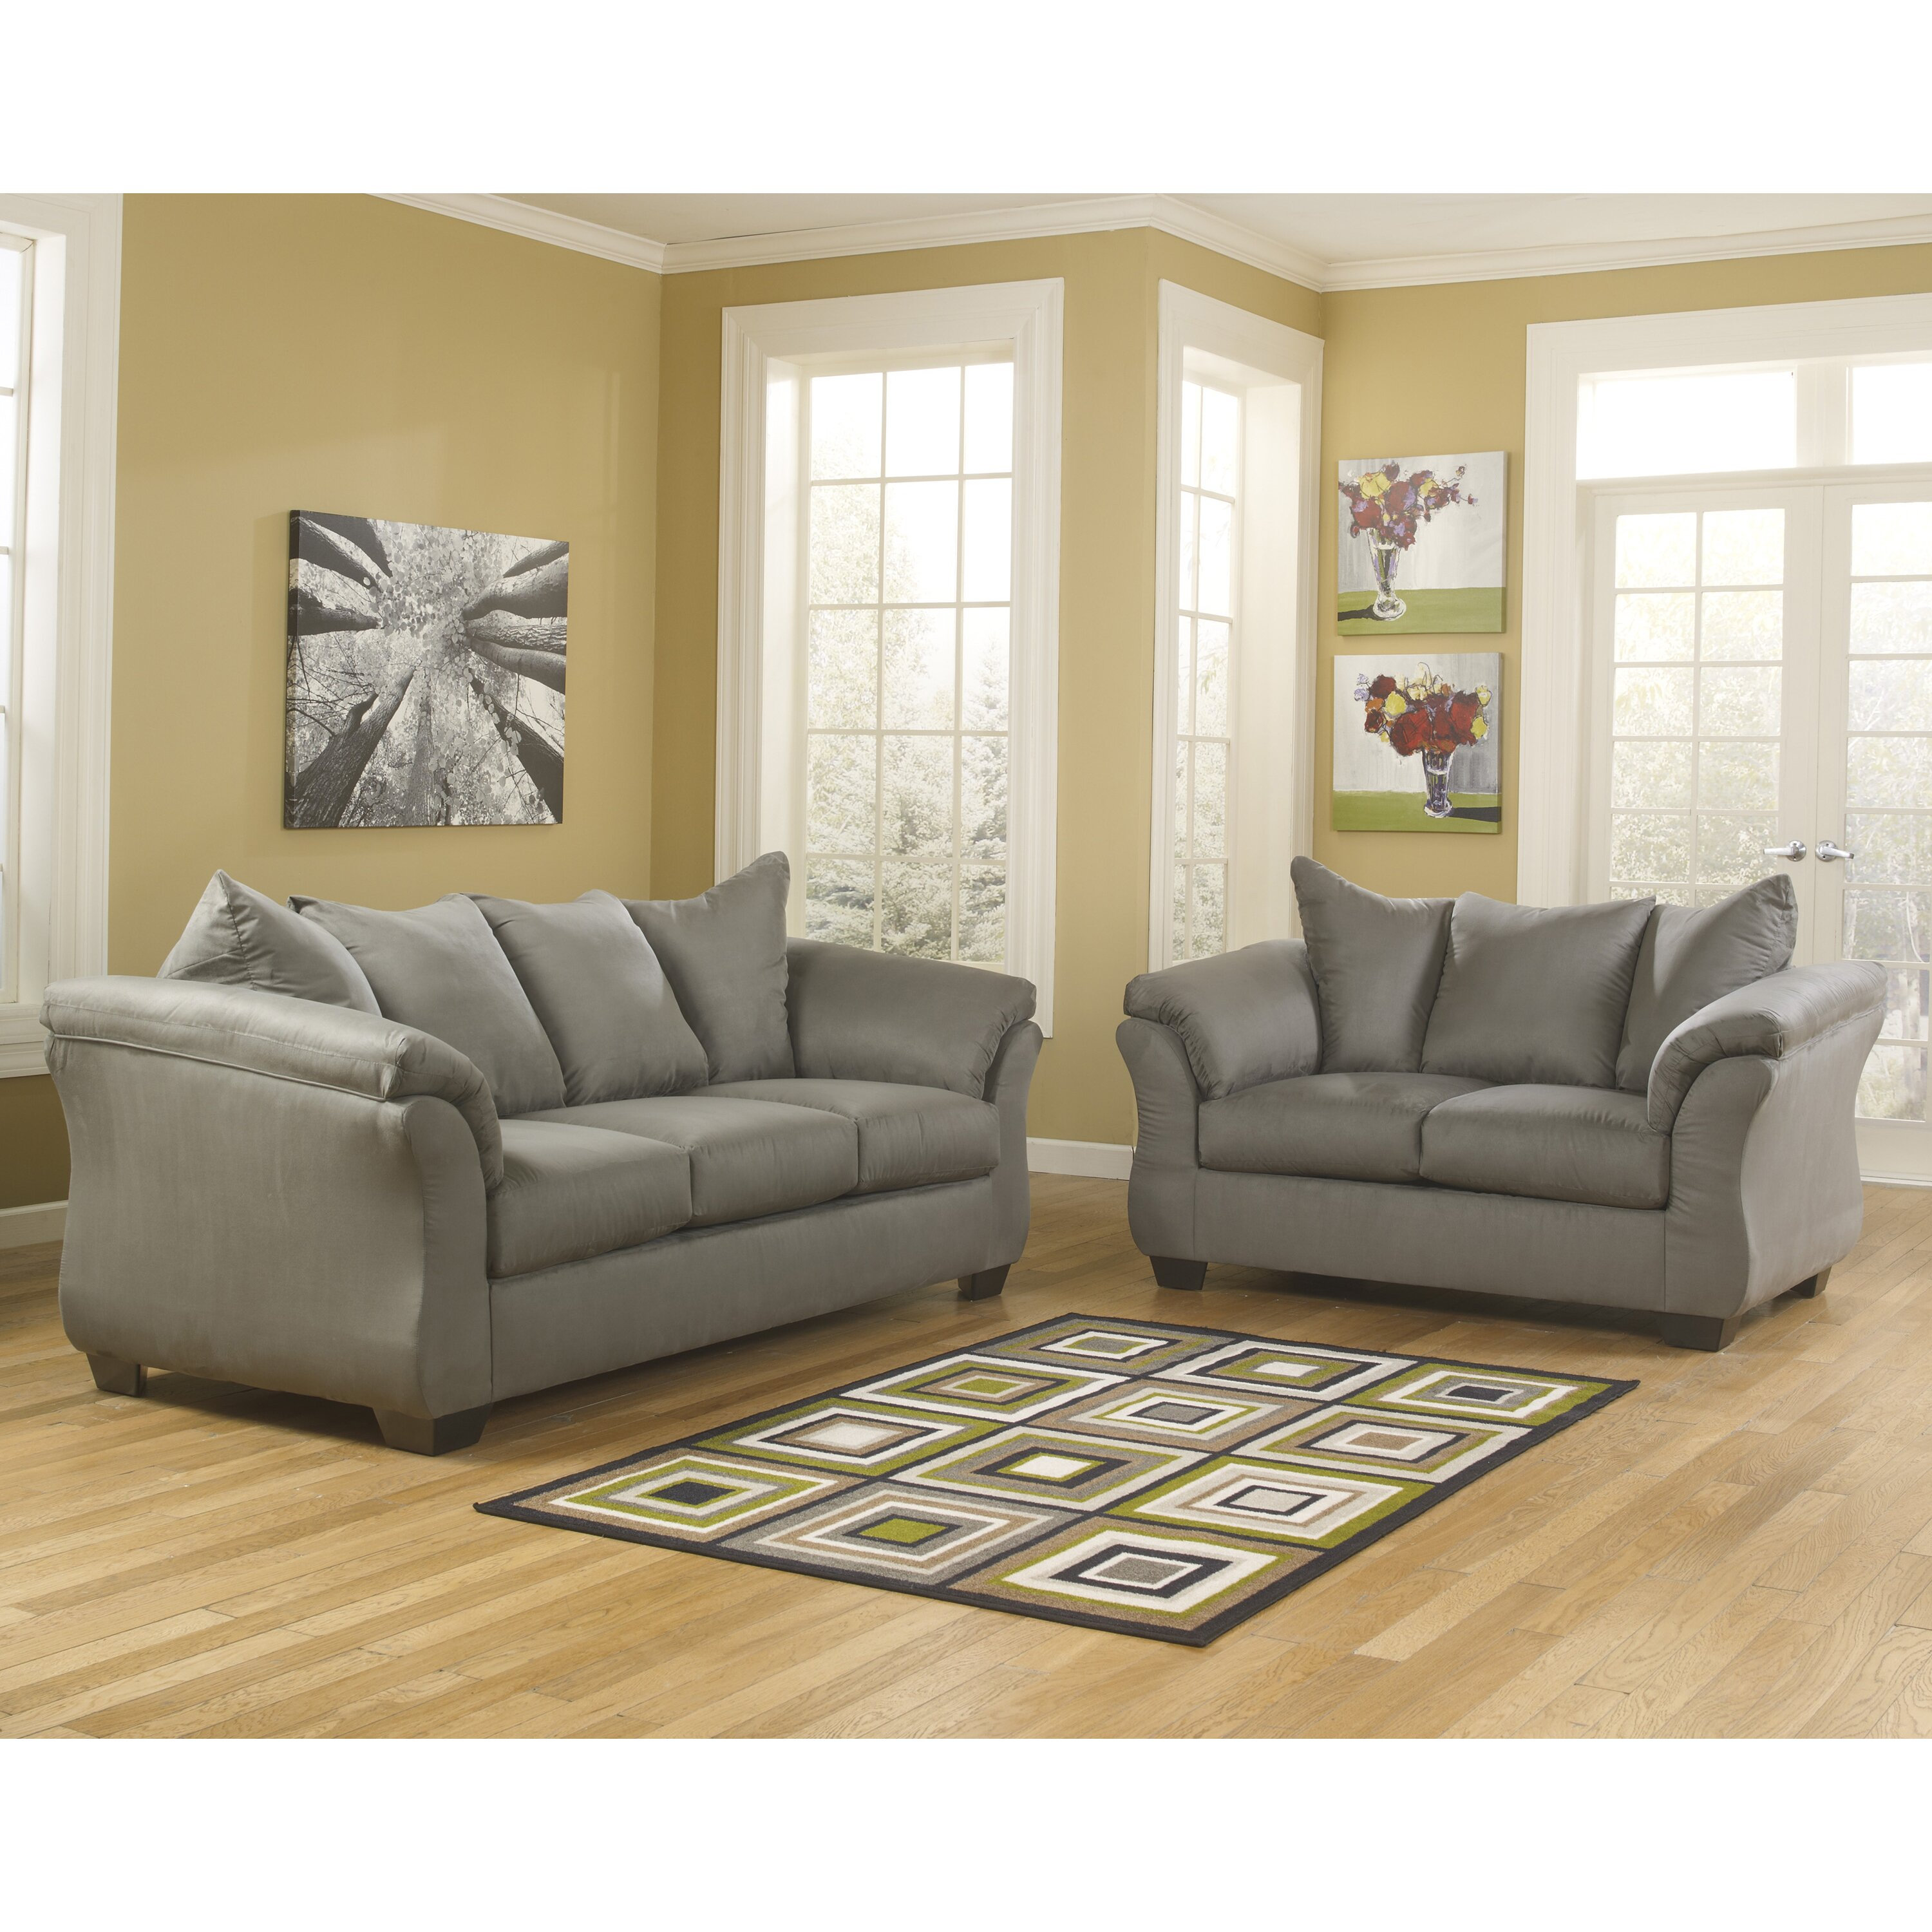 Individual Chairs For Living Room Living Room Sets Youll Love Wayfair